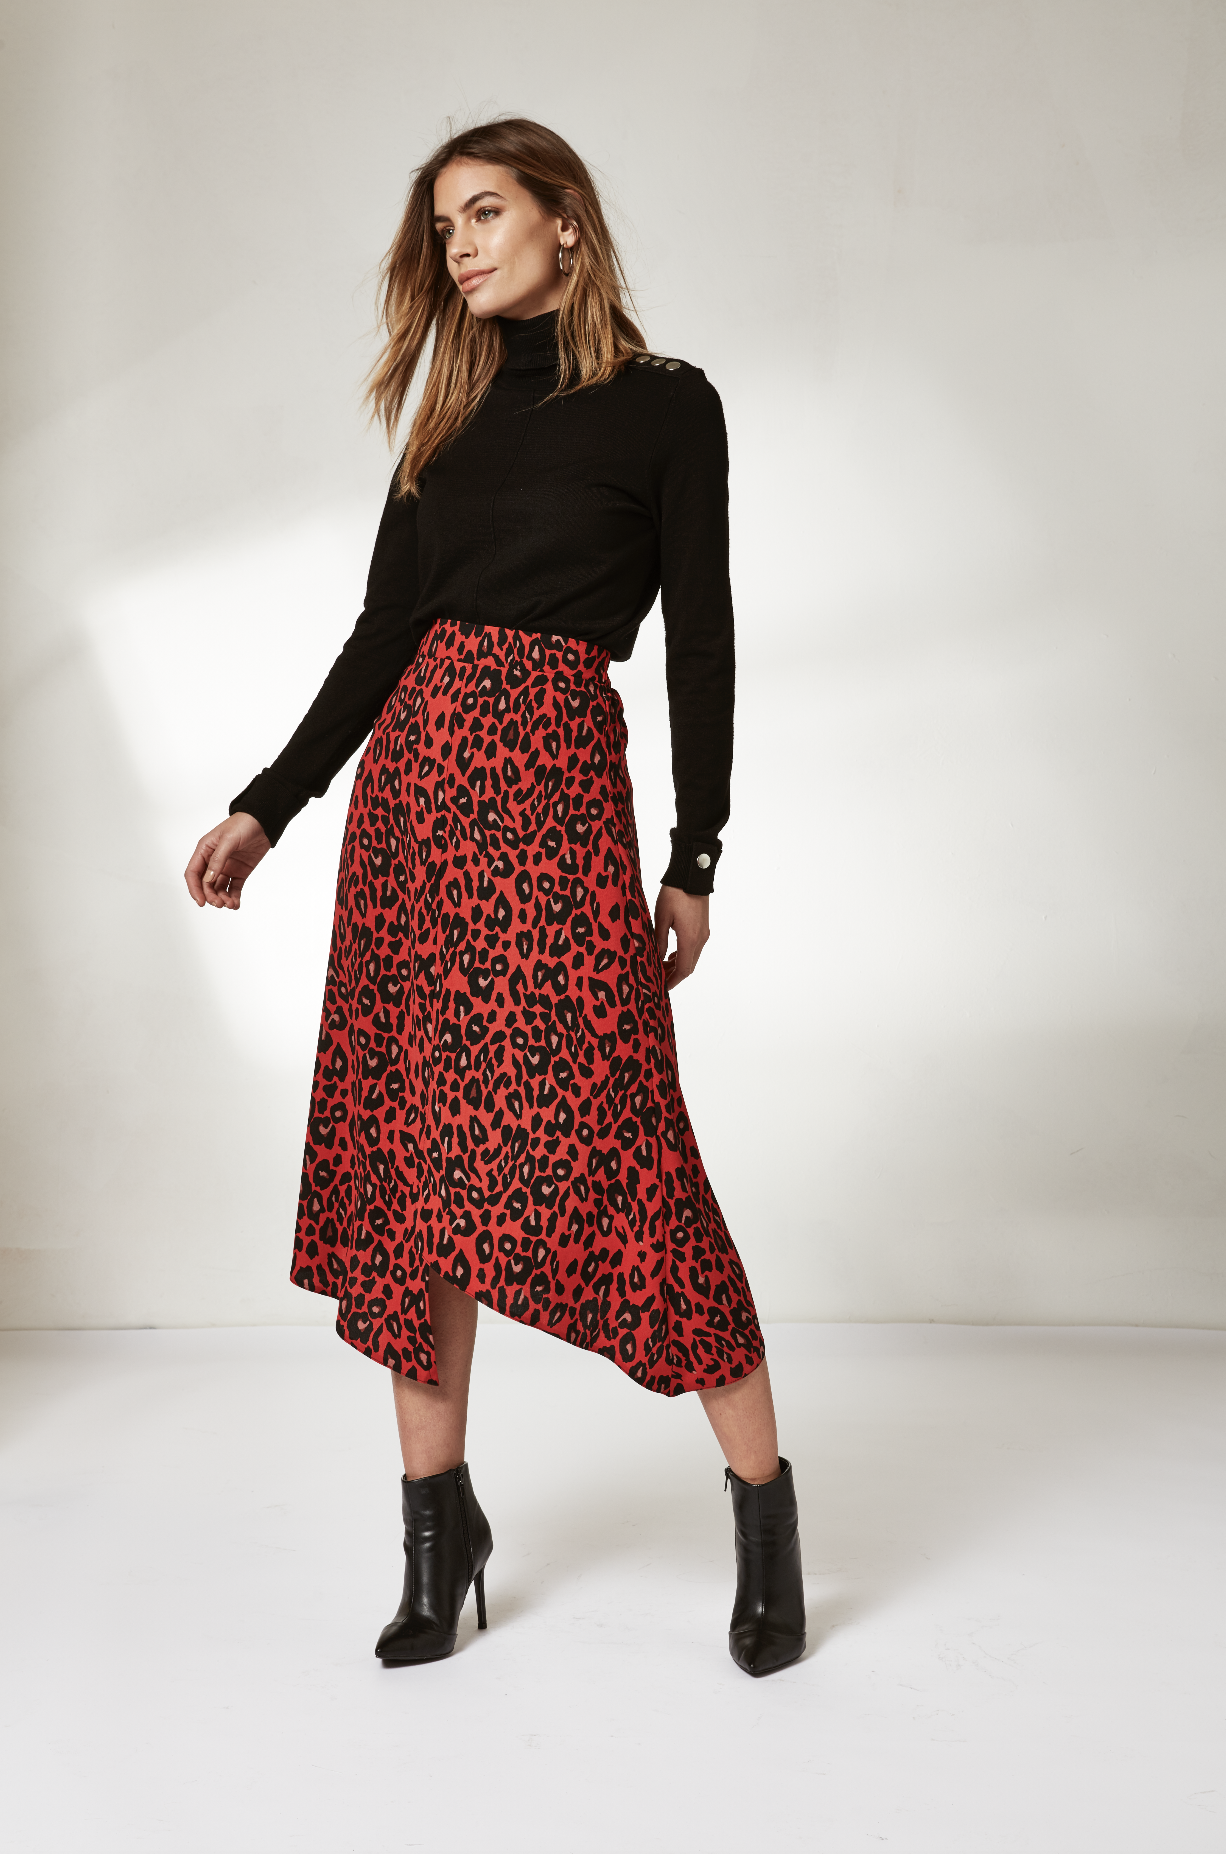 b3d7febd3b1b A new year of style | Refresh your wardrobe for 2019 with the latest animal  print midi skirts | Wallis | Click to shop #WallisFashion #WallisLoves ...